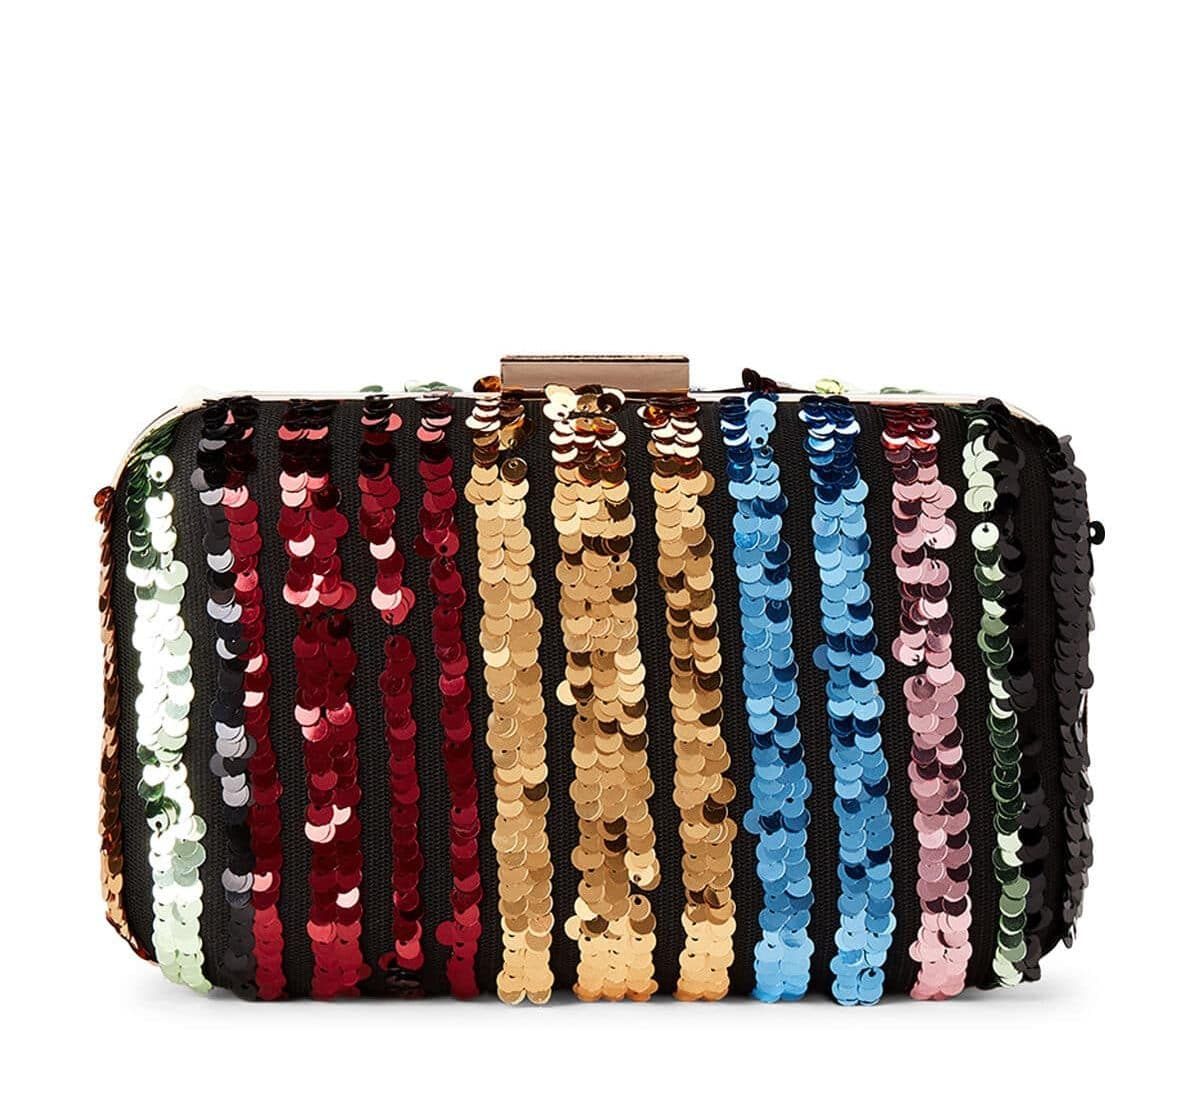 Camila Rainbow Stripped Sequin Clutch For Fall Winter Spring Summer